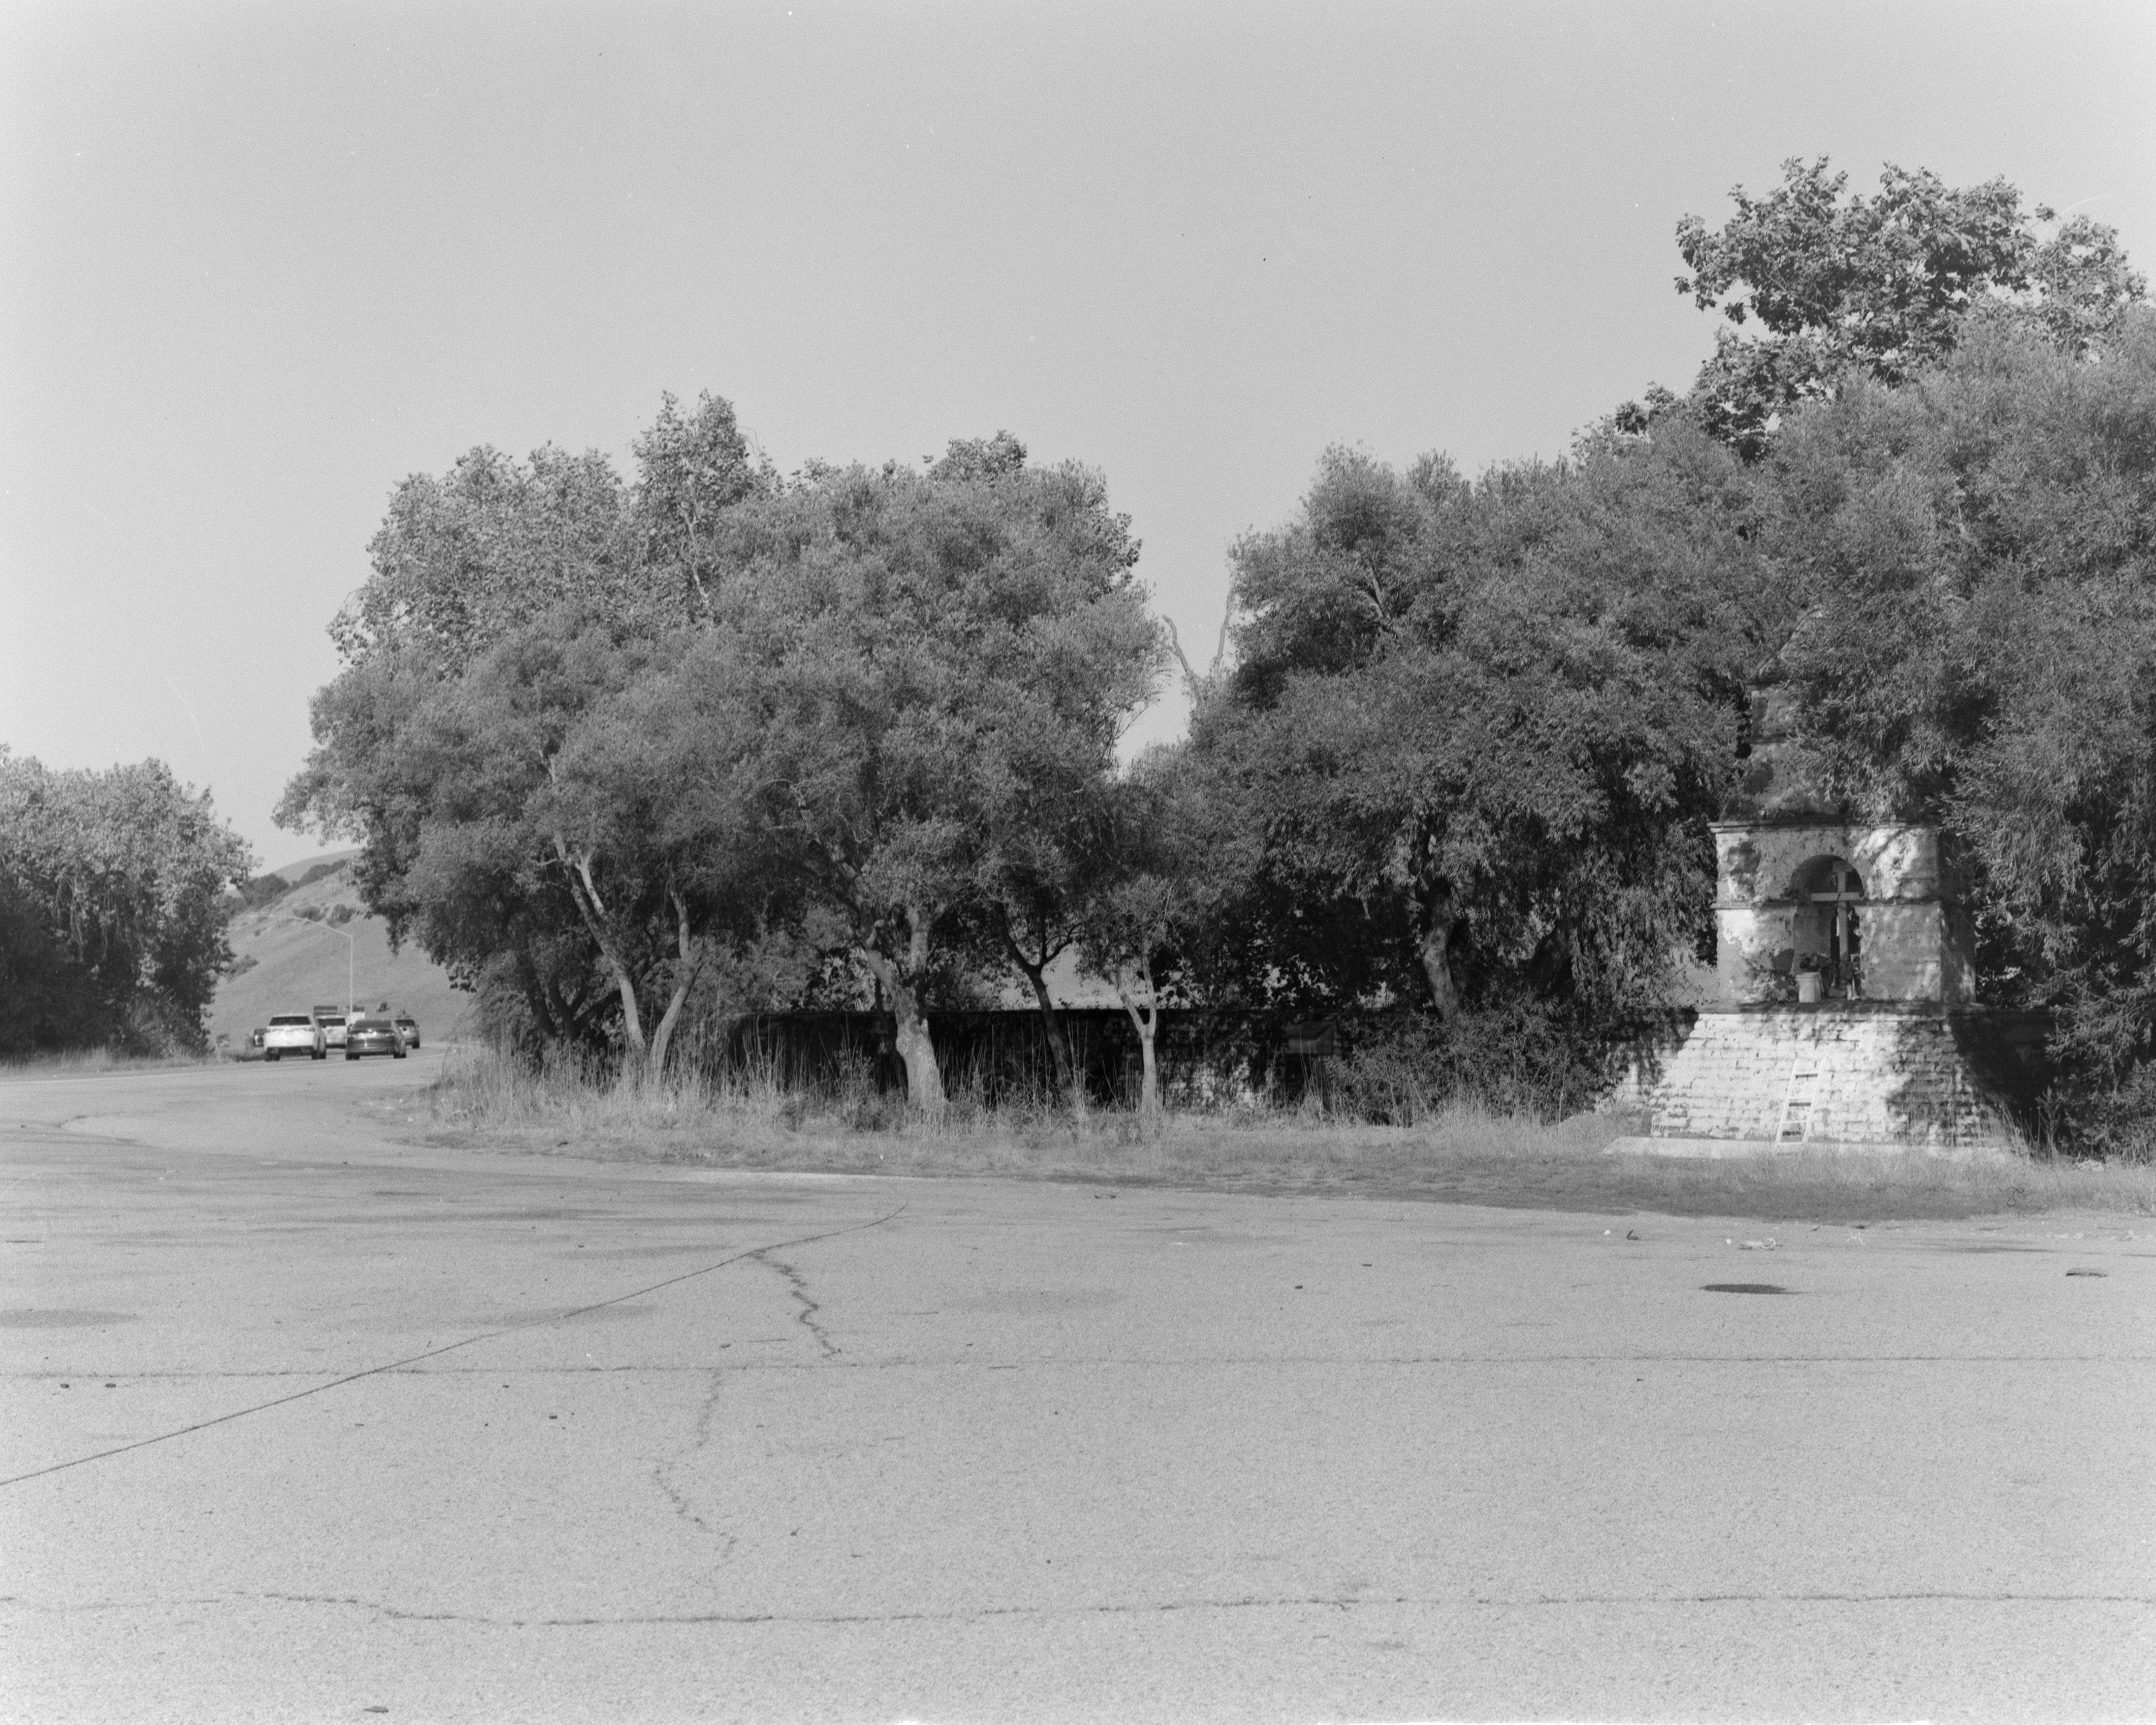 A black-and-white photograph of a dilapidated mission monument underneath a stand of trees. It contains a cross, and is adorned with flowers in pots. A busy highway filled with cars runs past the ignored monument.